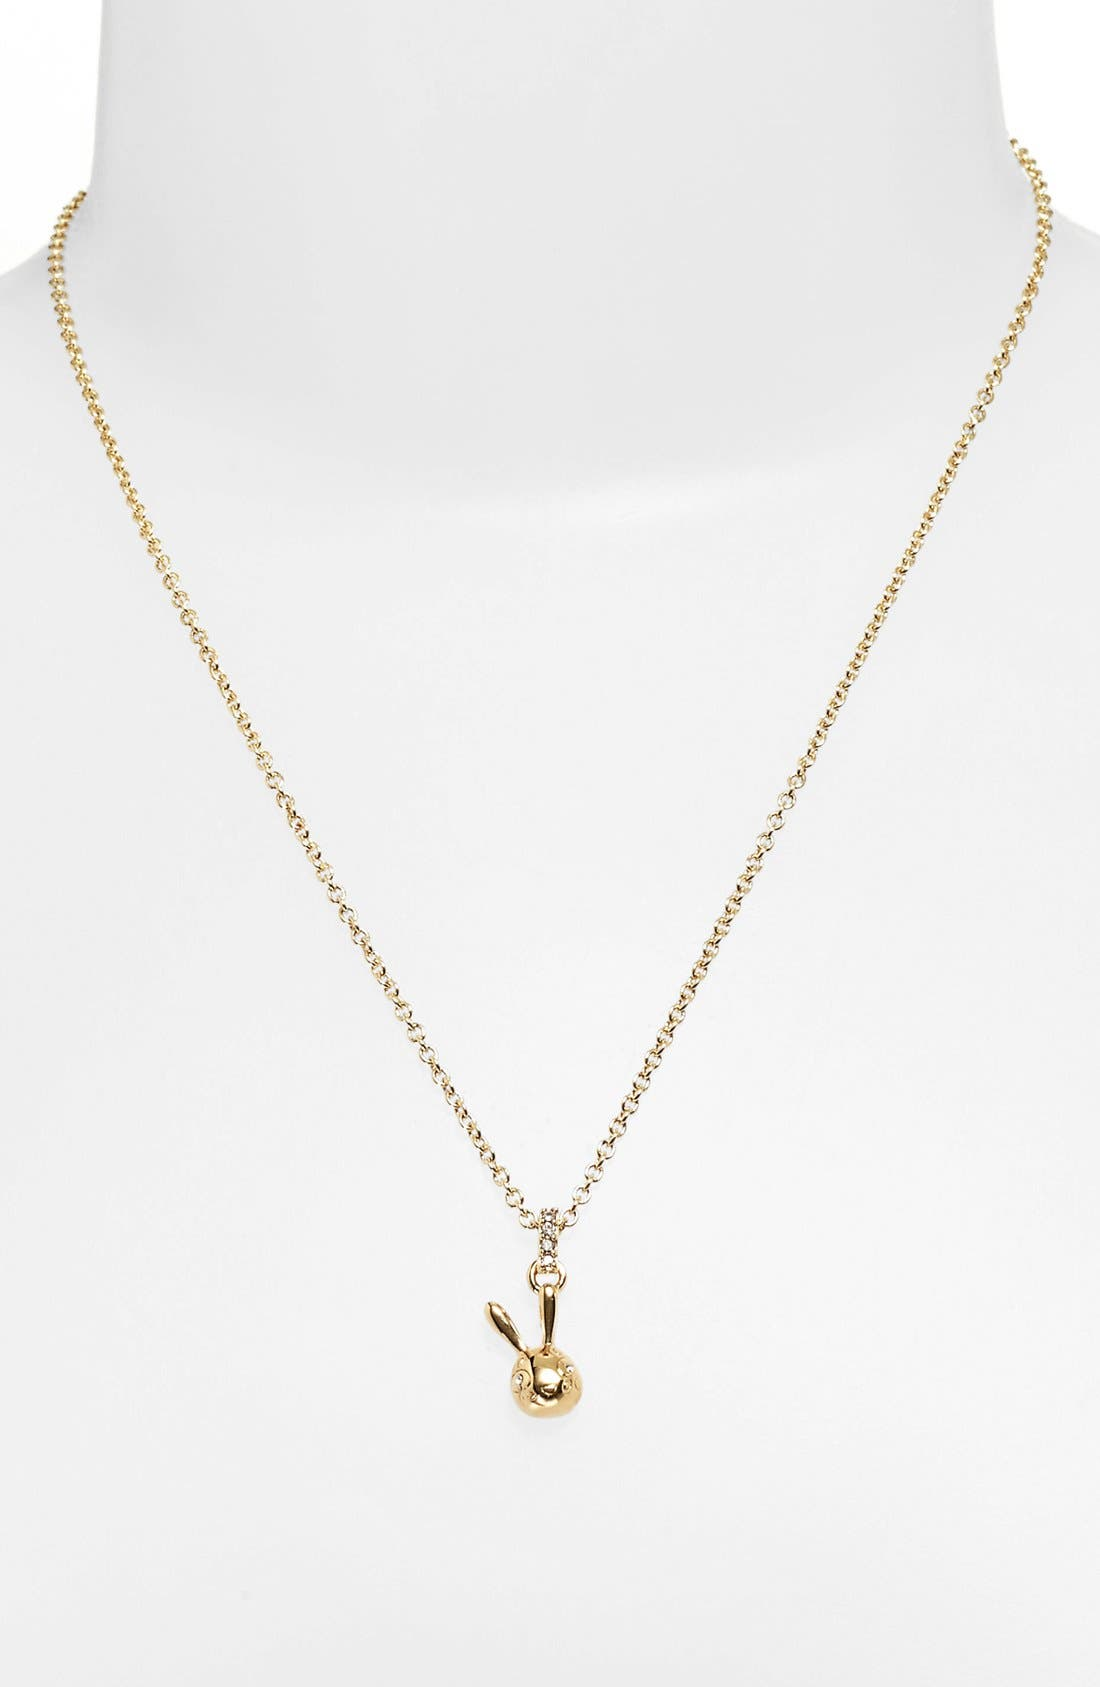 Alternate Image 1 Selected - MARC BY MARC JACOBS 'Dynamite' Bunny Pendant Necklace